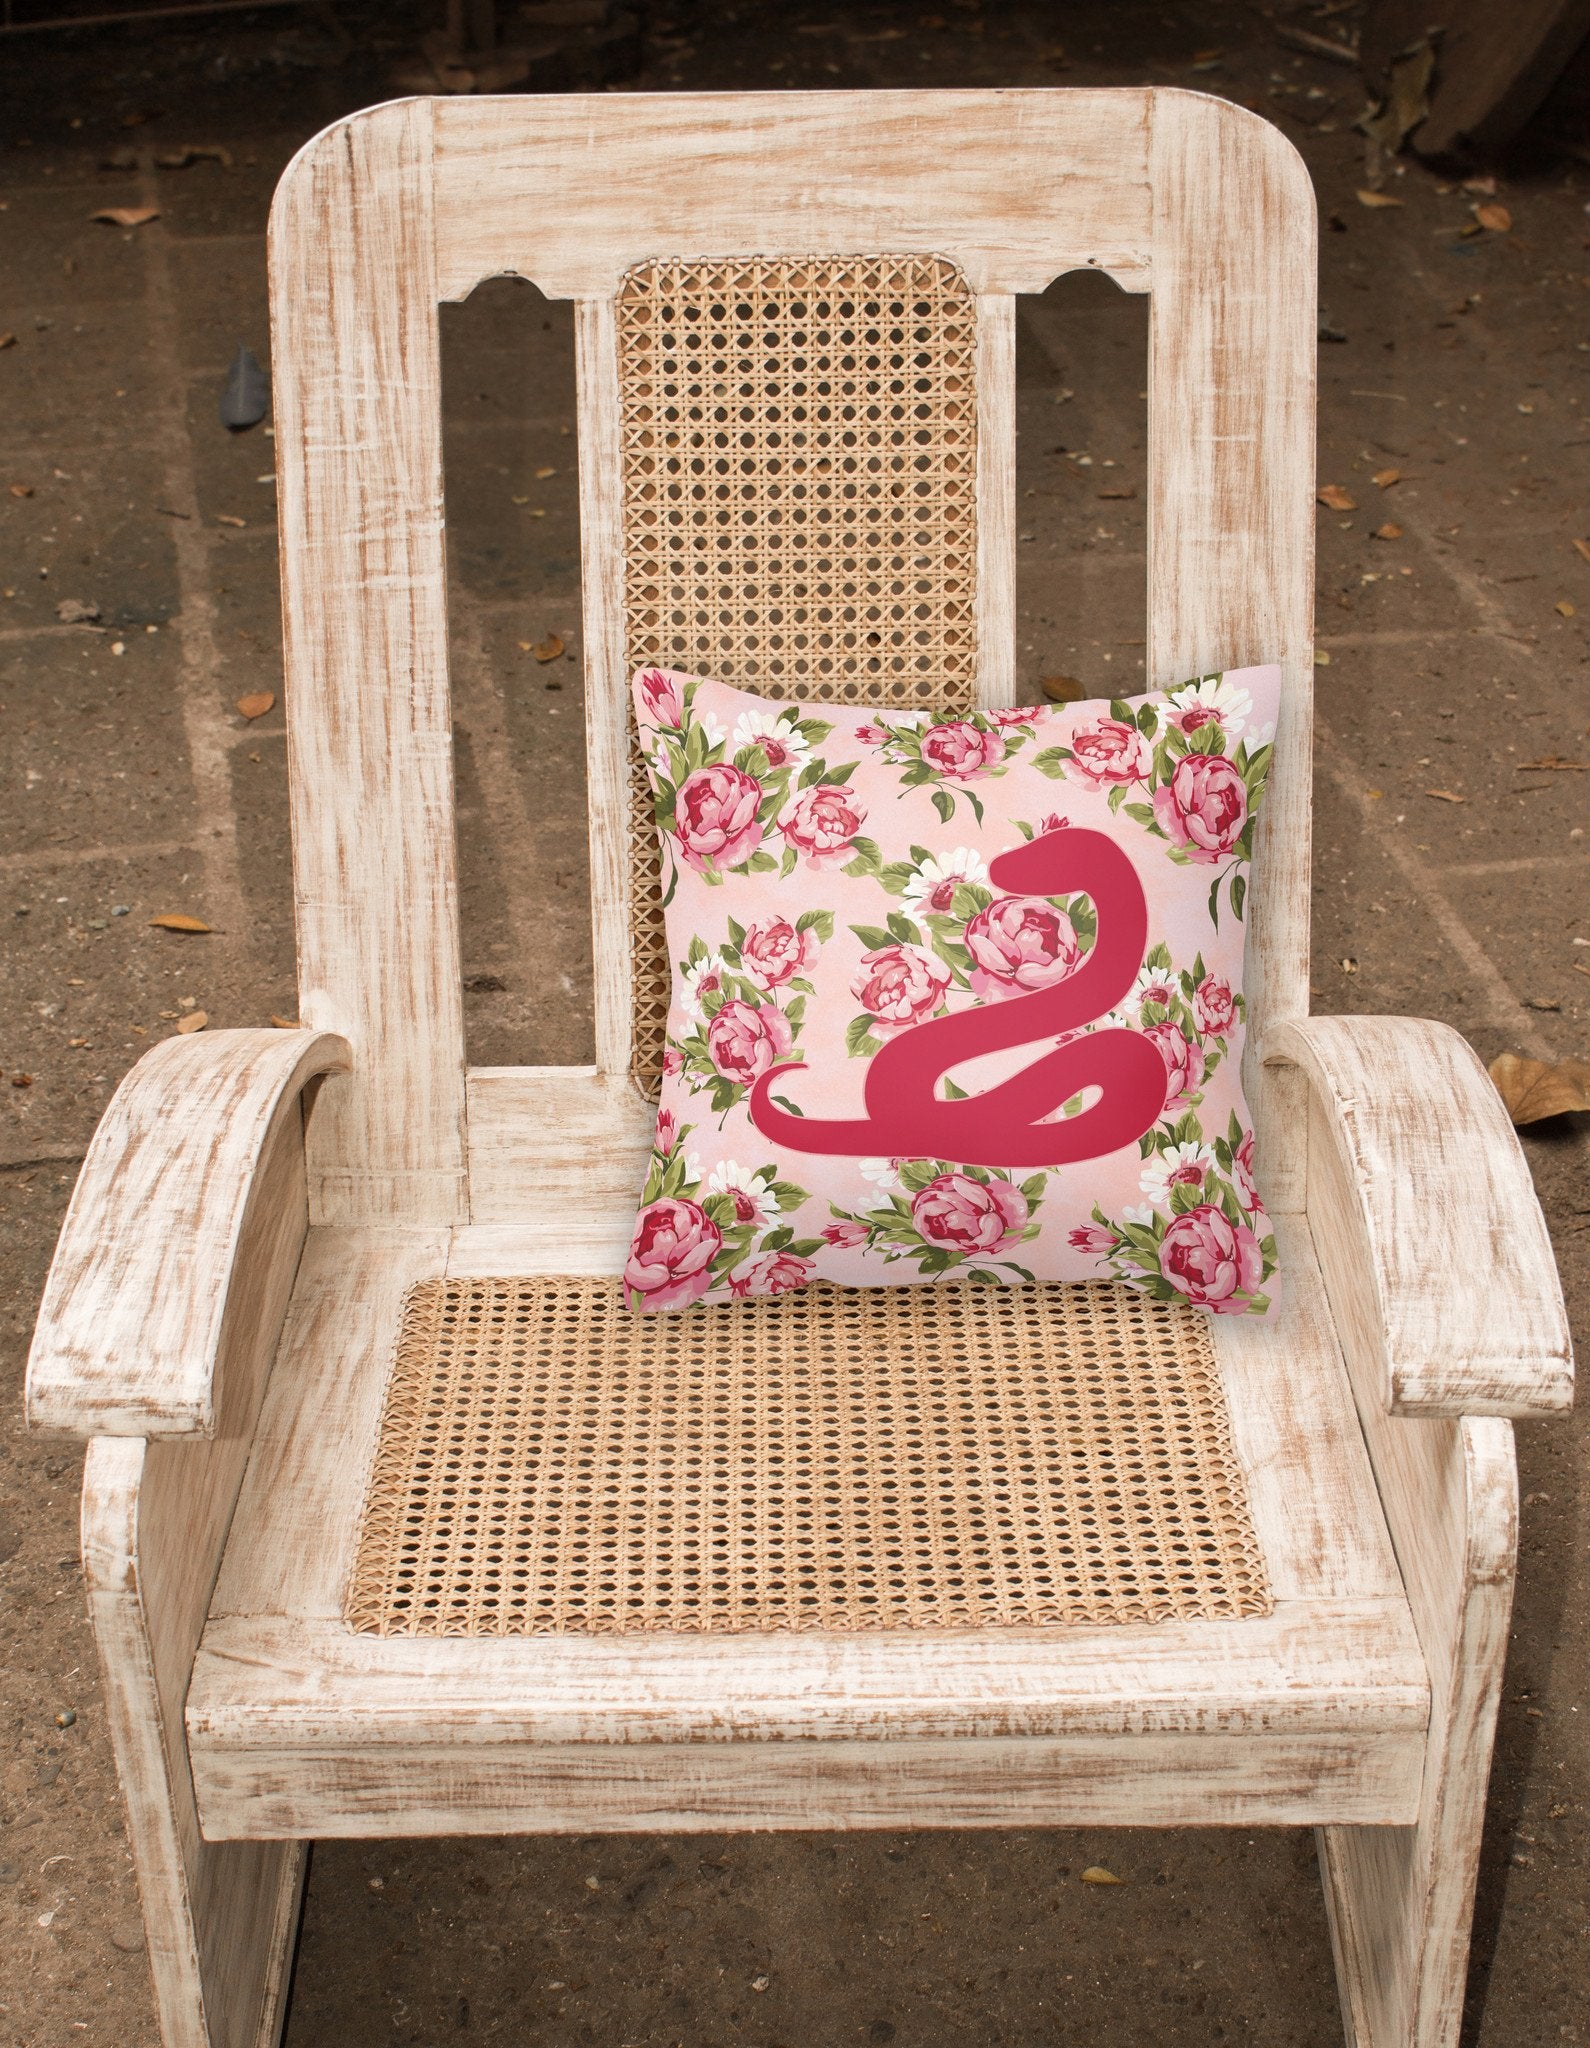 Snake Shabby Chic Pink Roses  Fabric Decorative Pillow BB1124-RS-PK-PW1414 by Caroline's Treasures